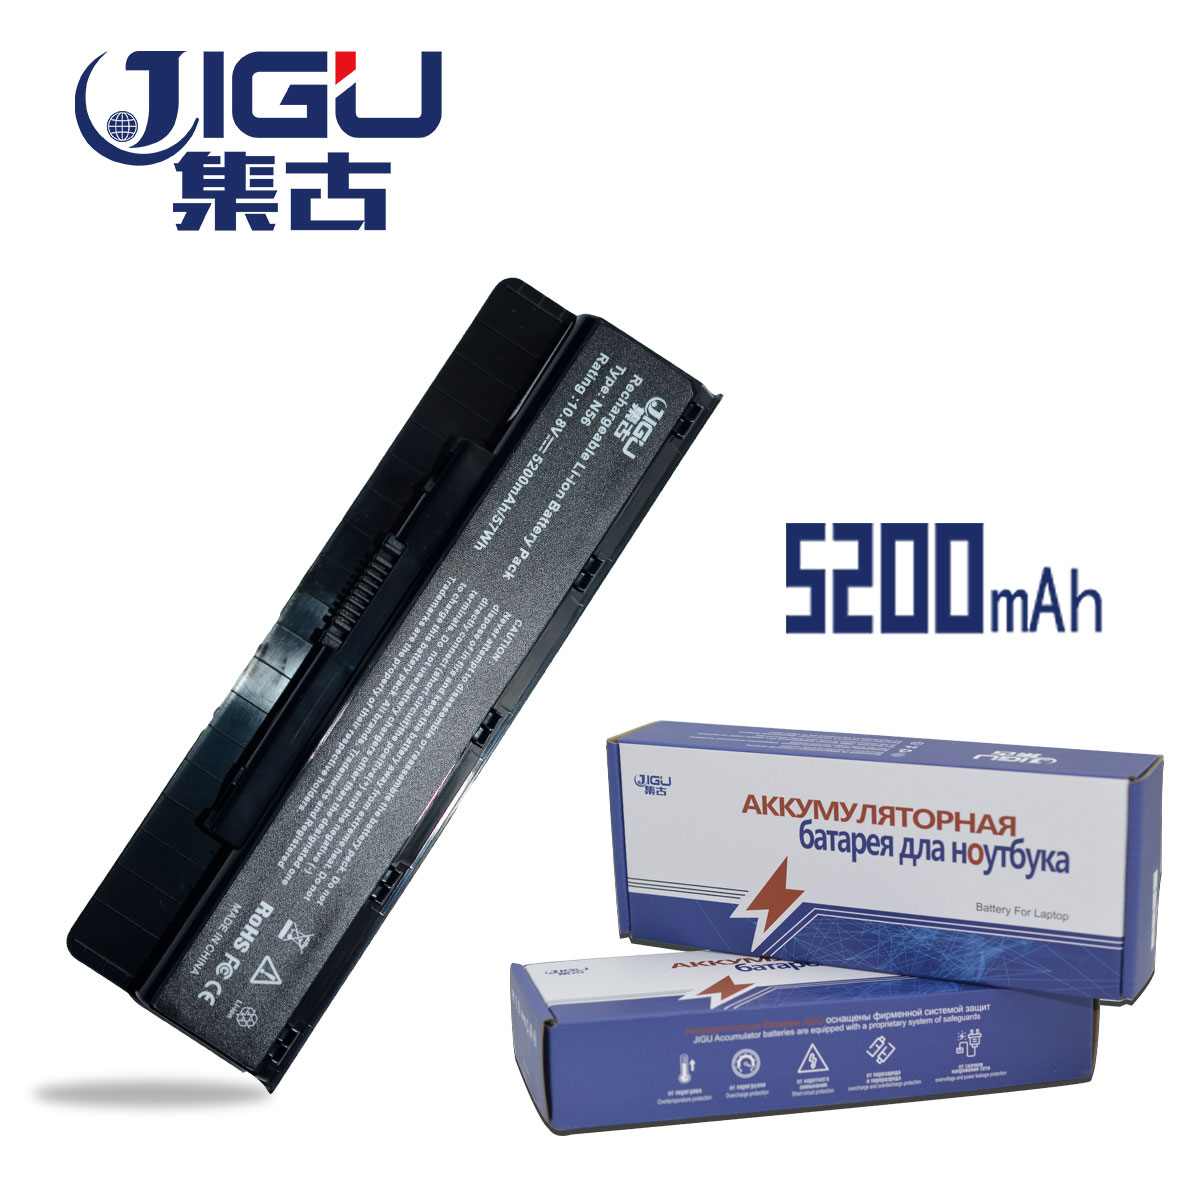 JIGU New Battery For Asus N46 N46V N46VM N46VZ N56 N56V N56VJ N56VM N56VZ A32-N56